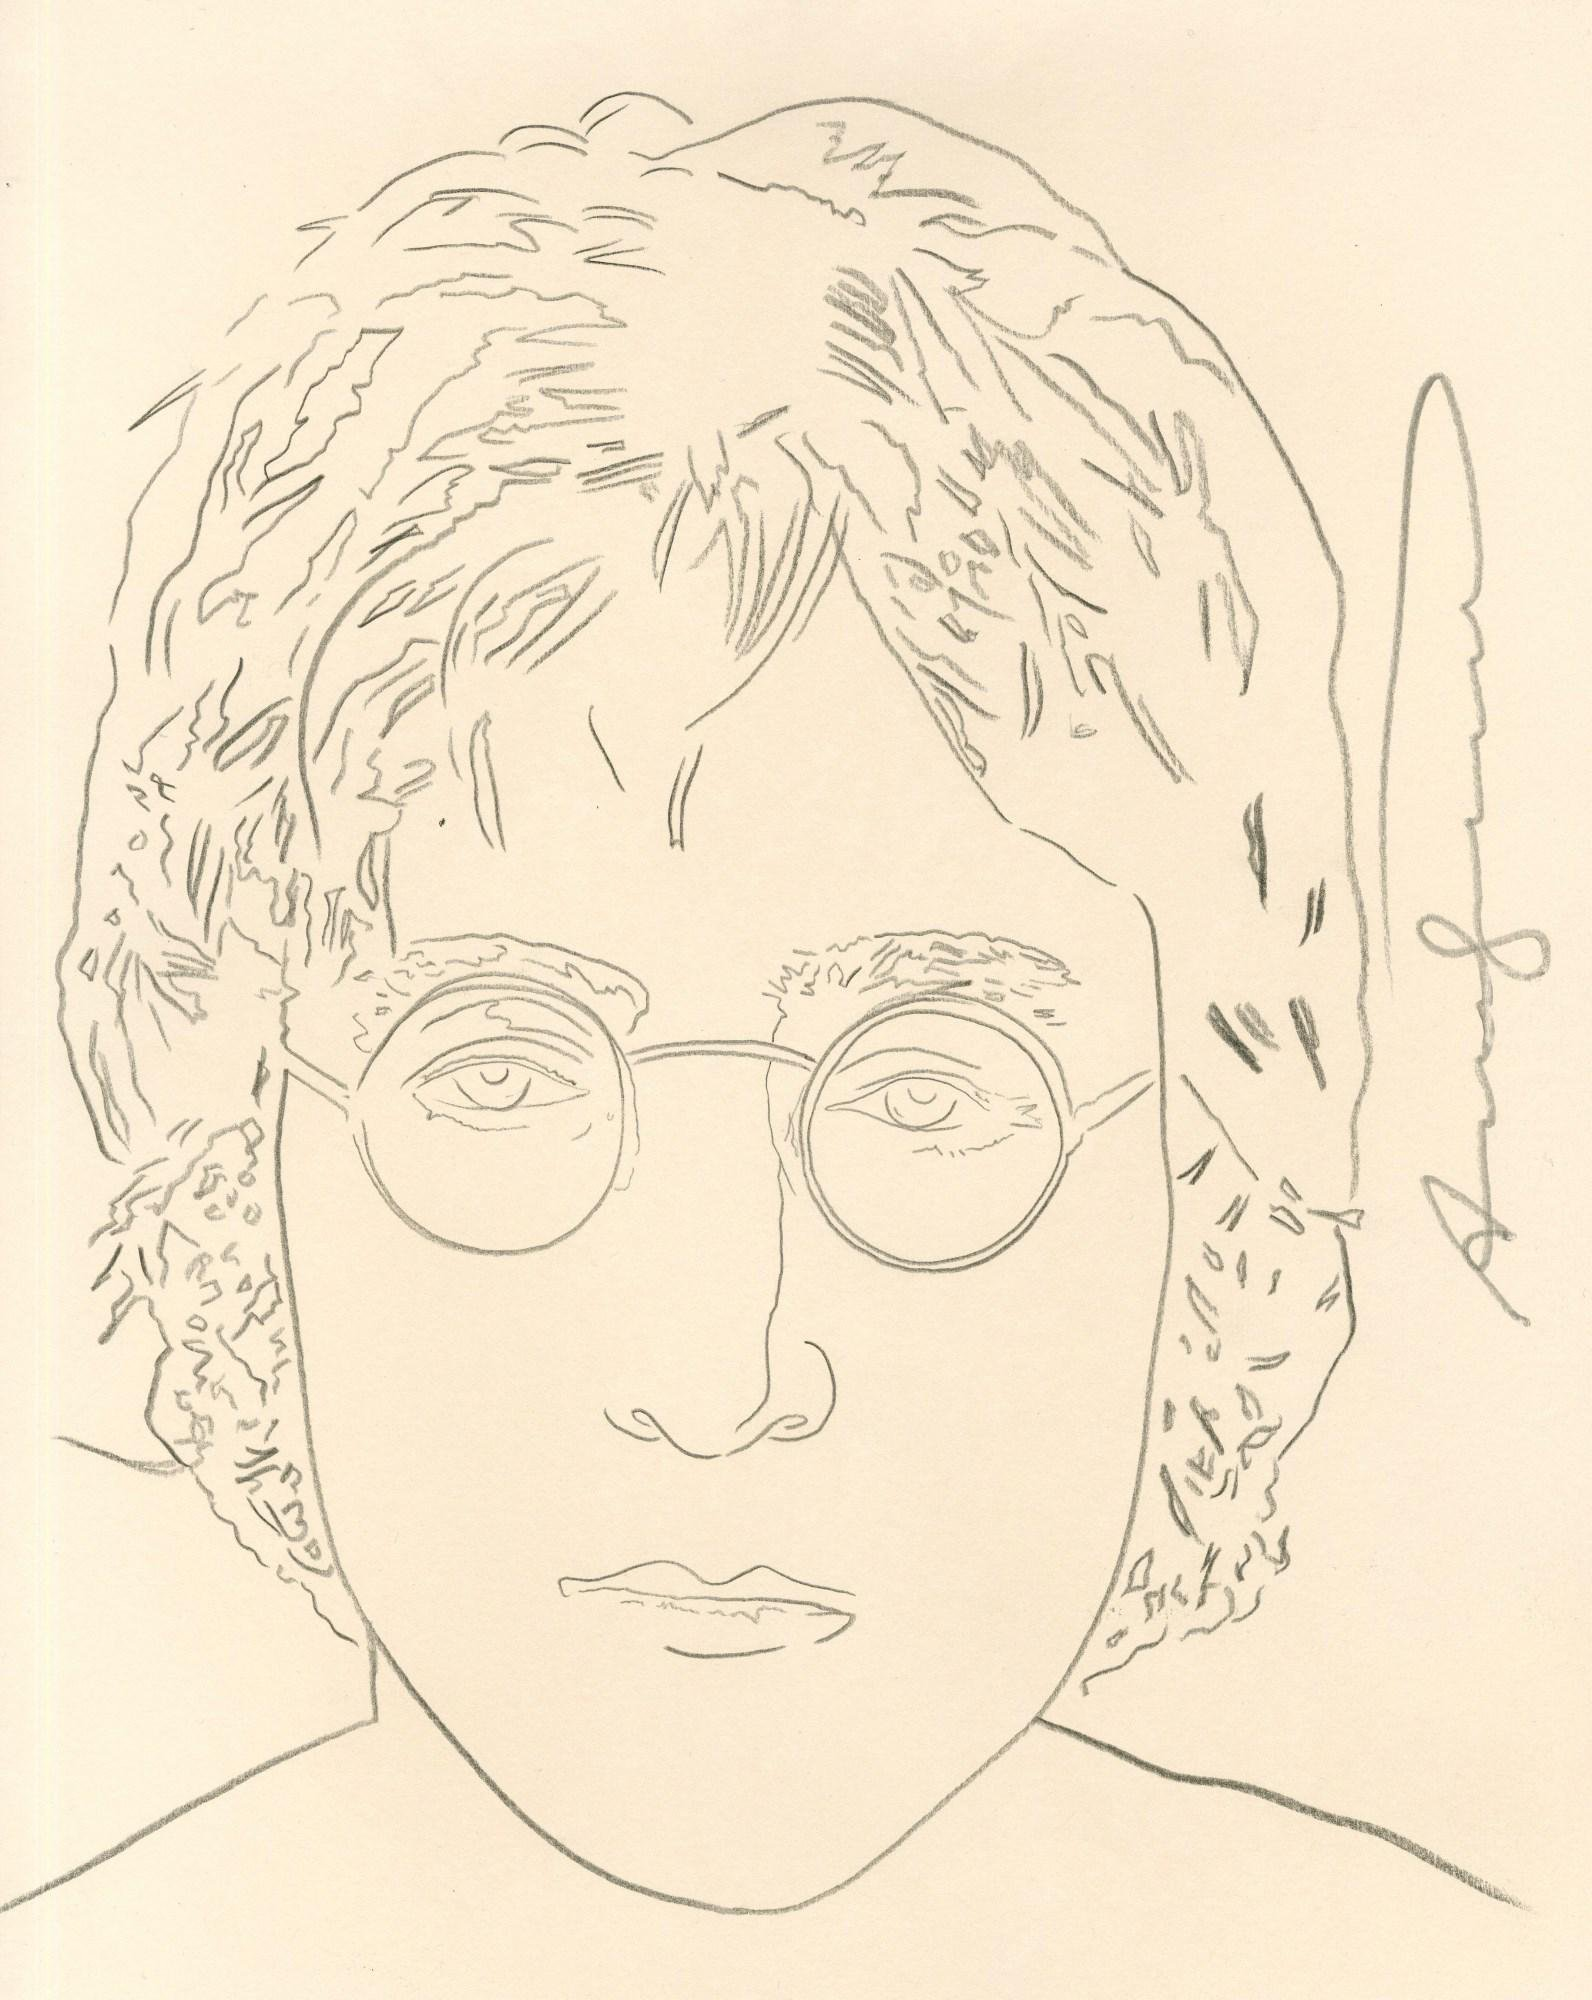 ANDY WARHOL - John Lennon - Pencil on paper